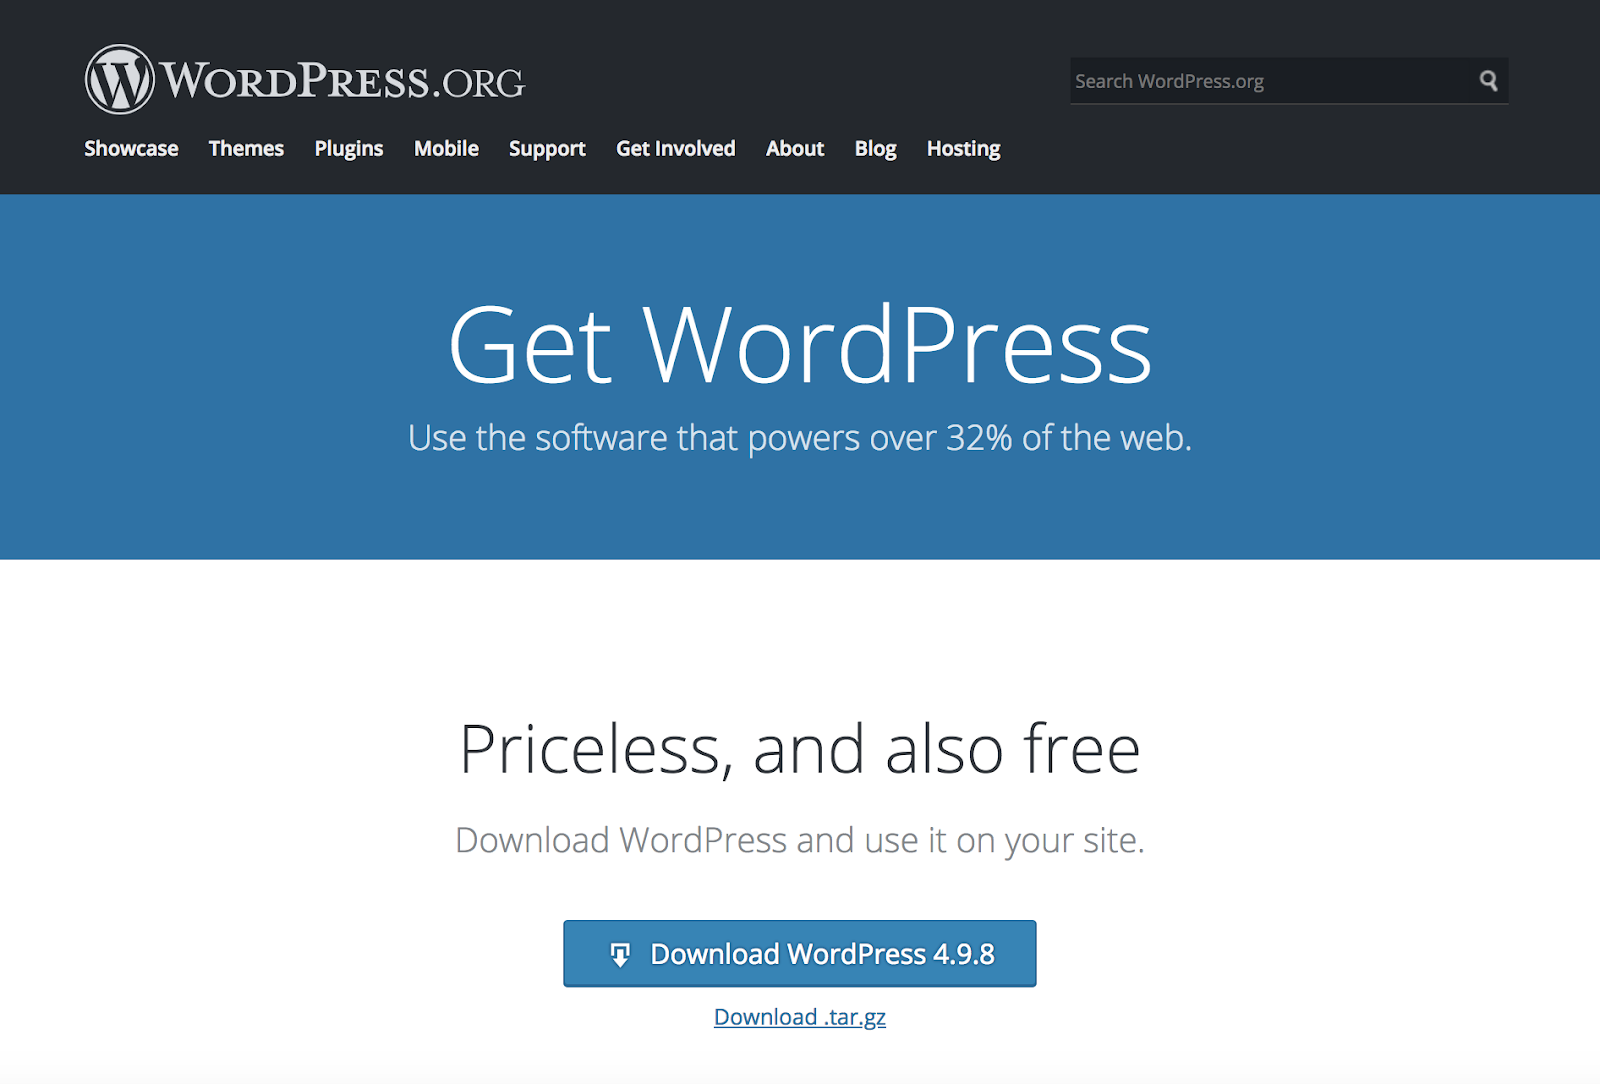 How do I start using and install WordPress